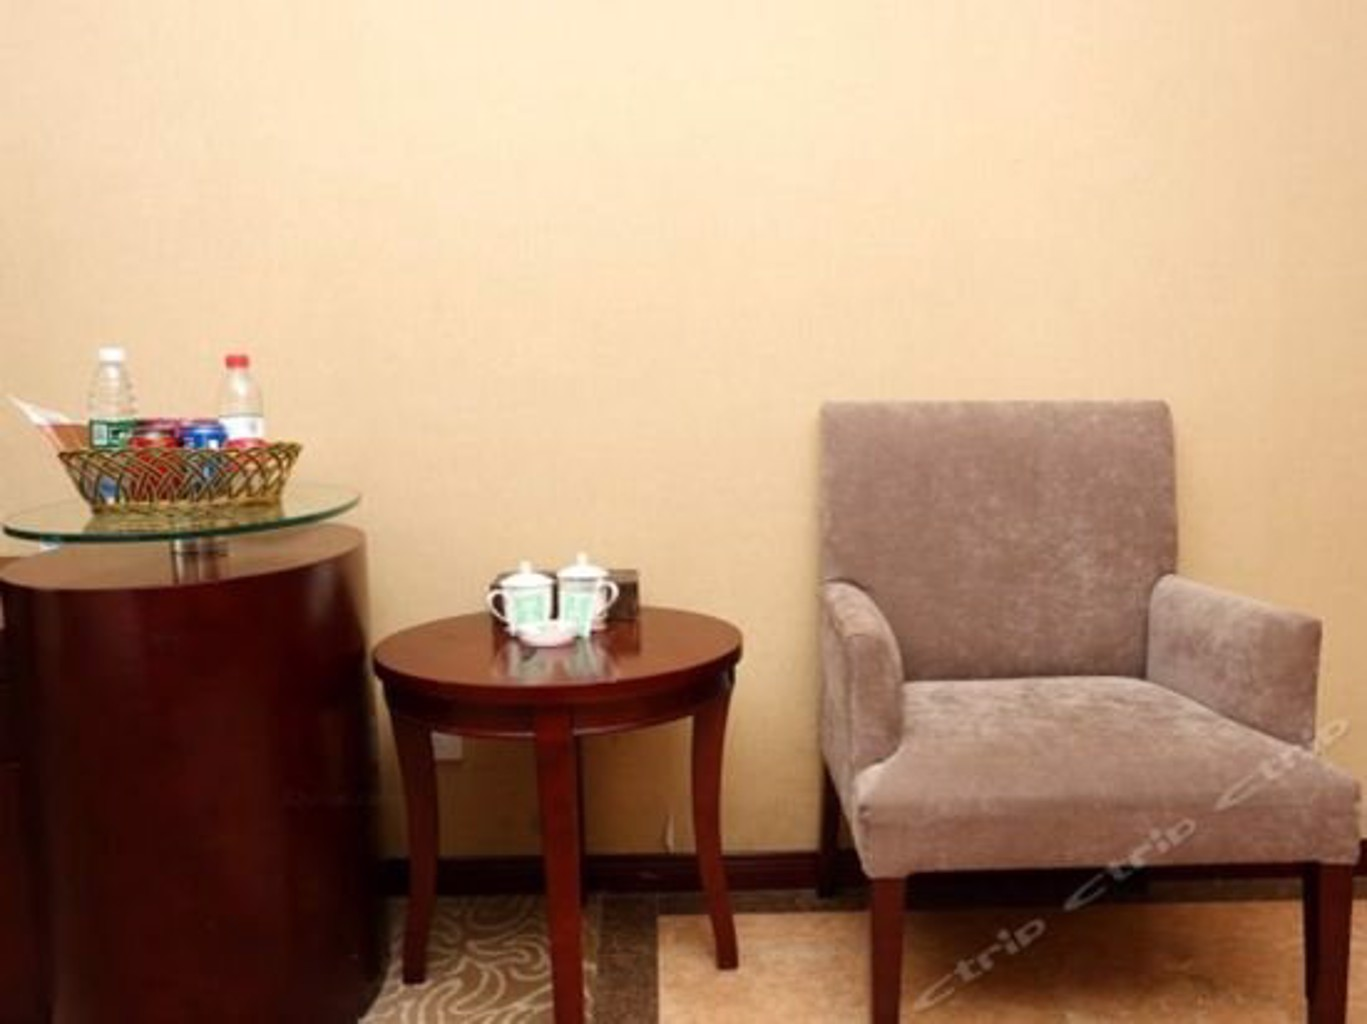 Gallery image of Shanglinyuan Hotel Shenzhen